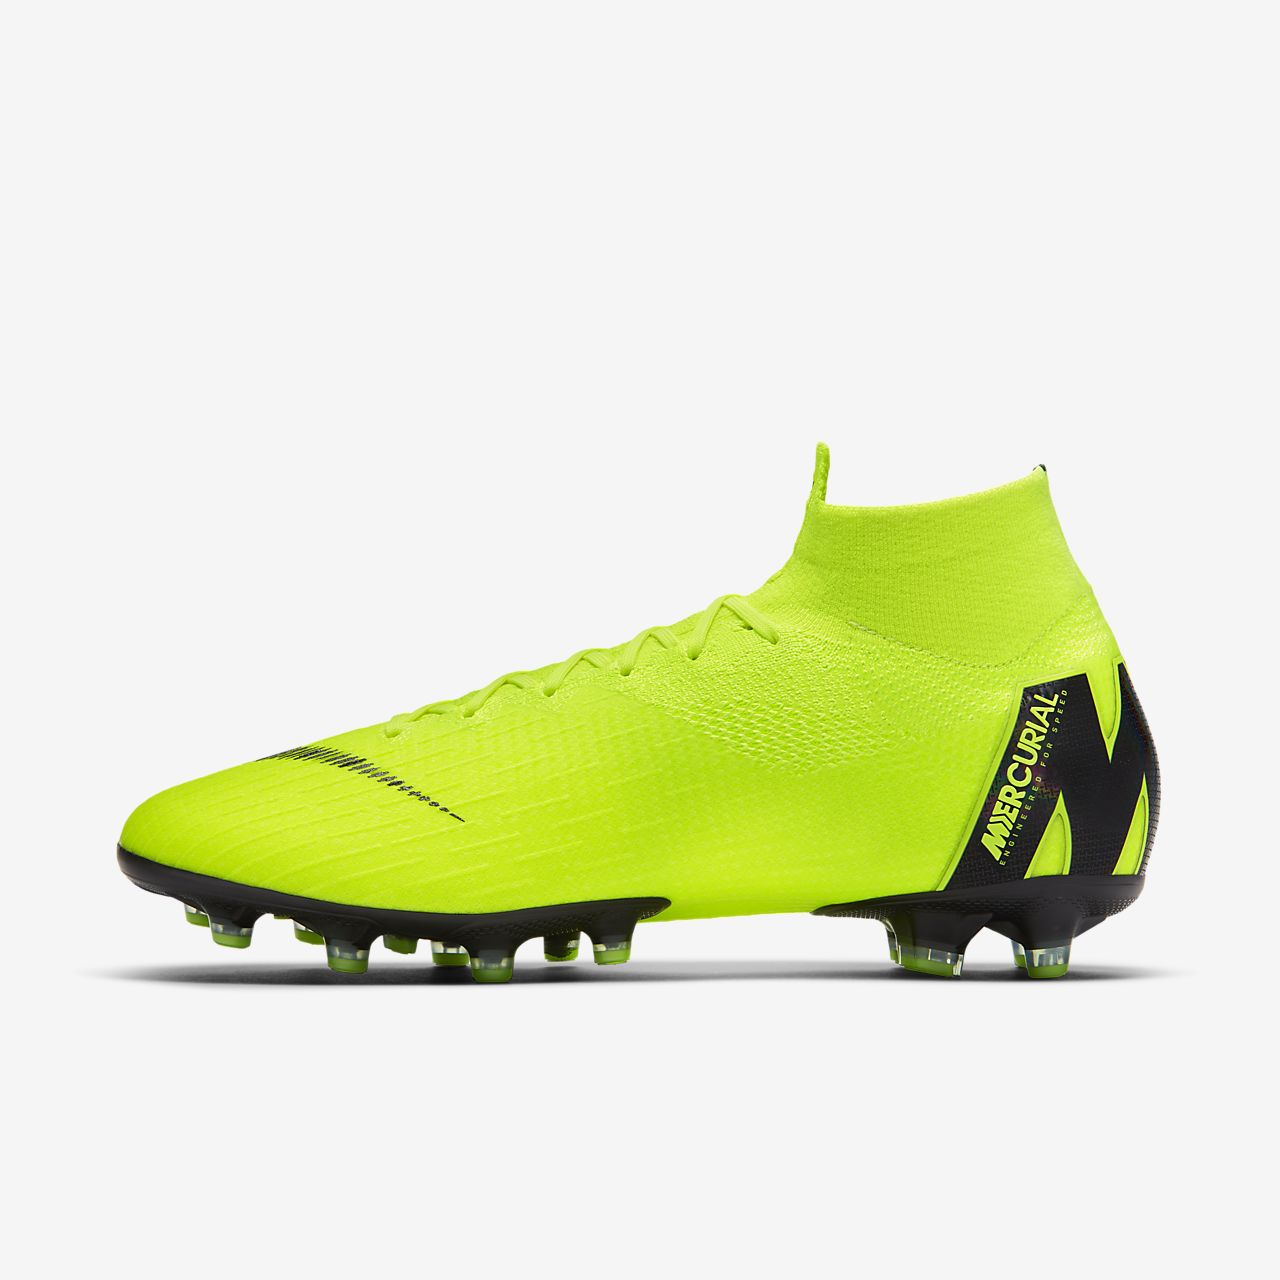 e7c6a7feae2a Nike Mercurial Superfly 360 Elite AG-PRO Artificial-Grass Football ...